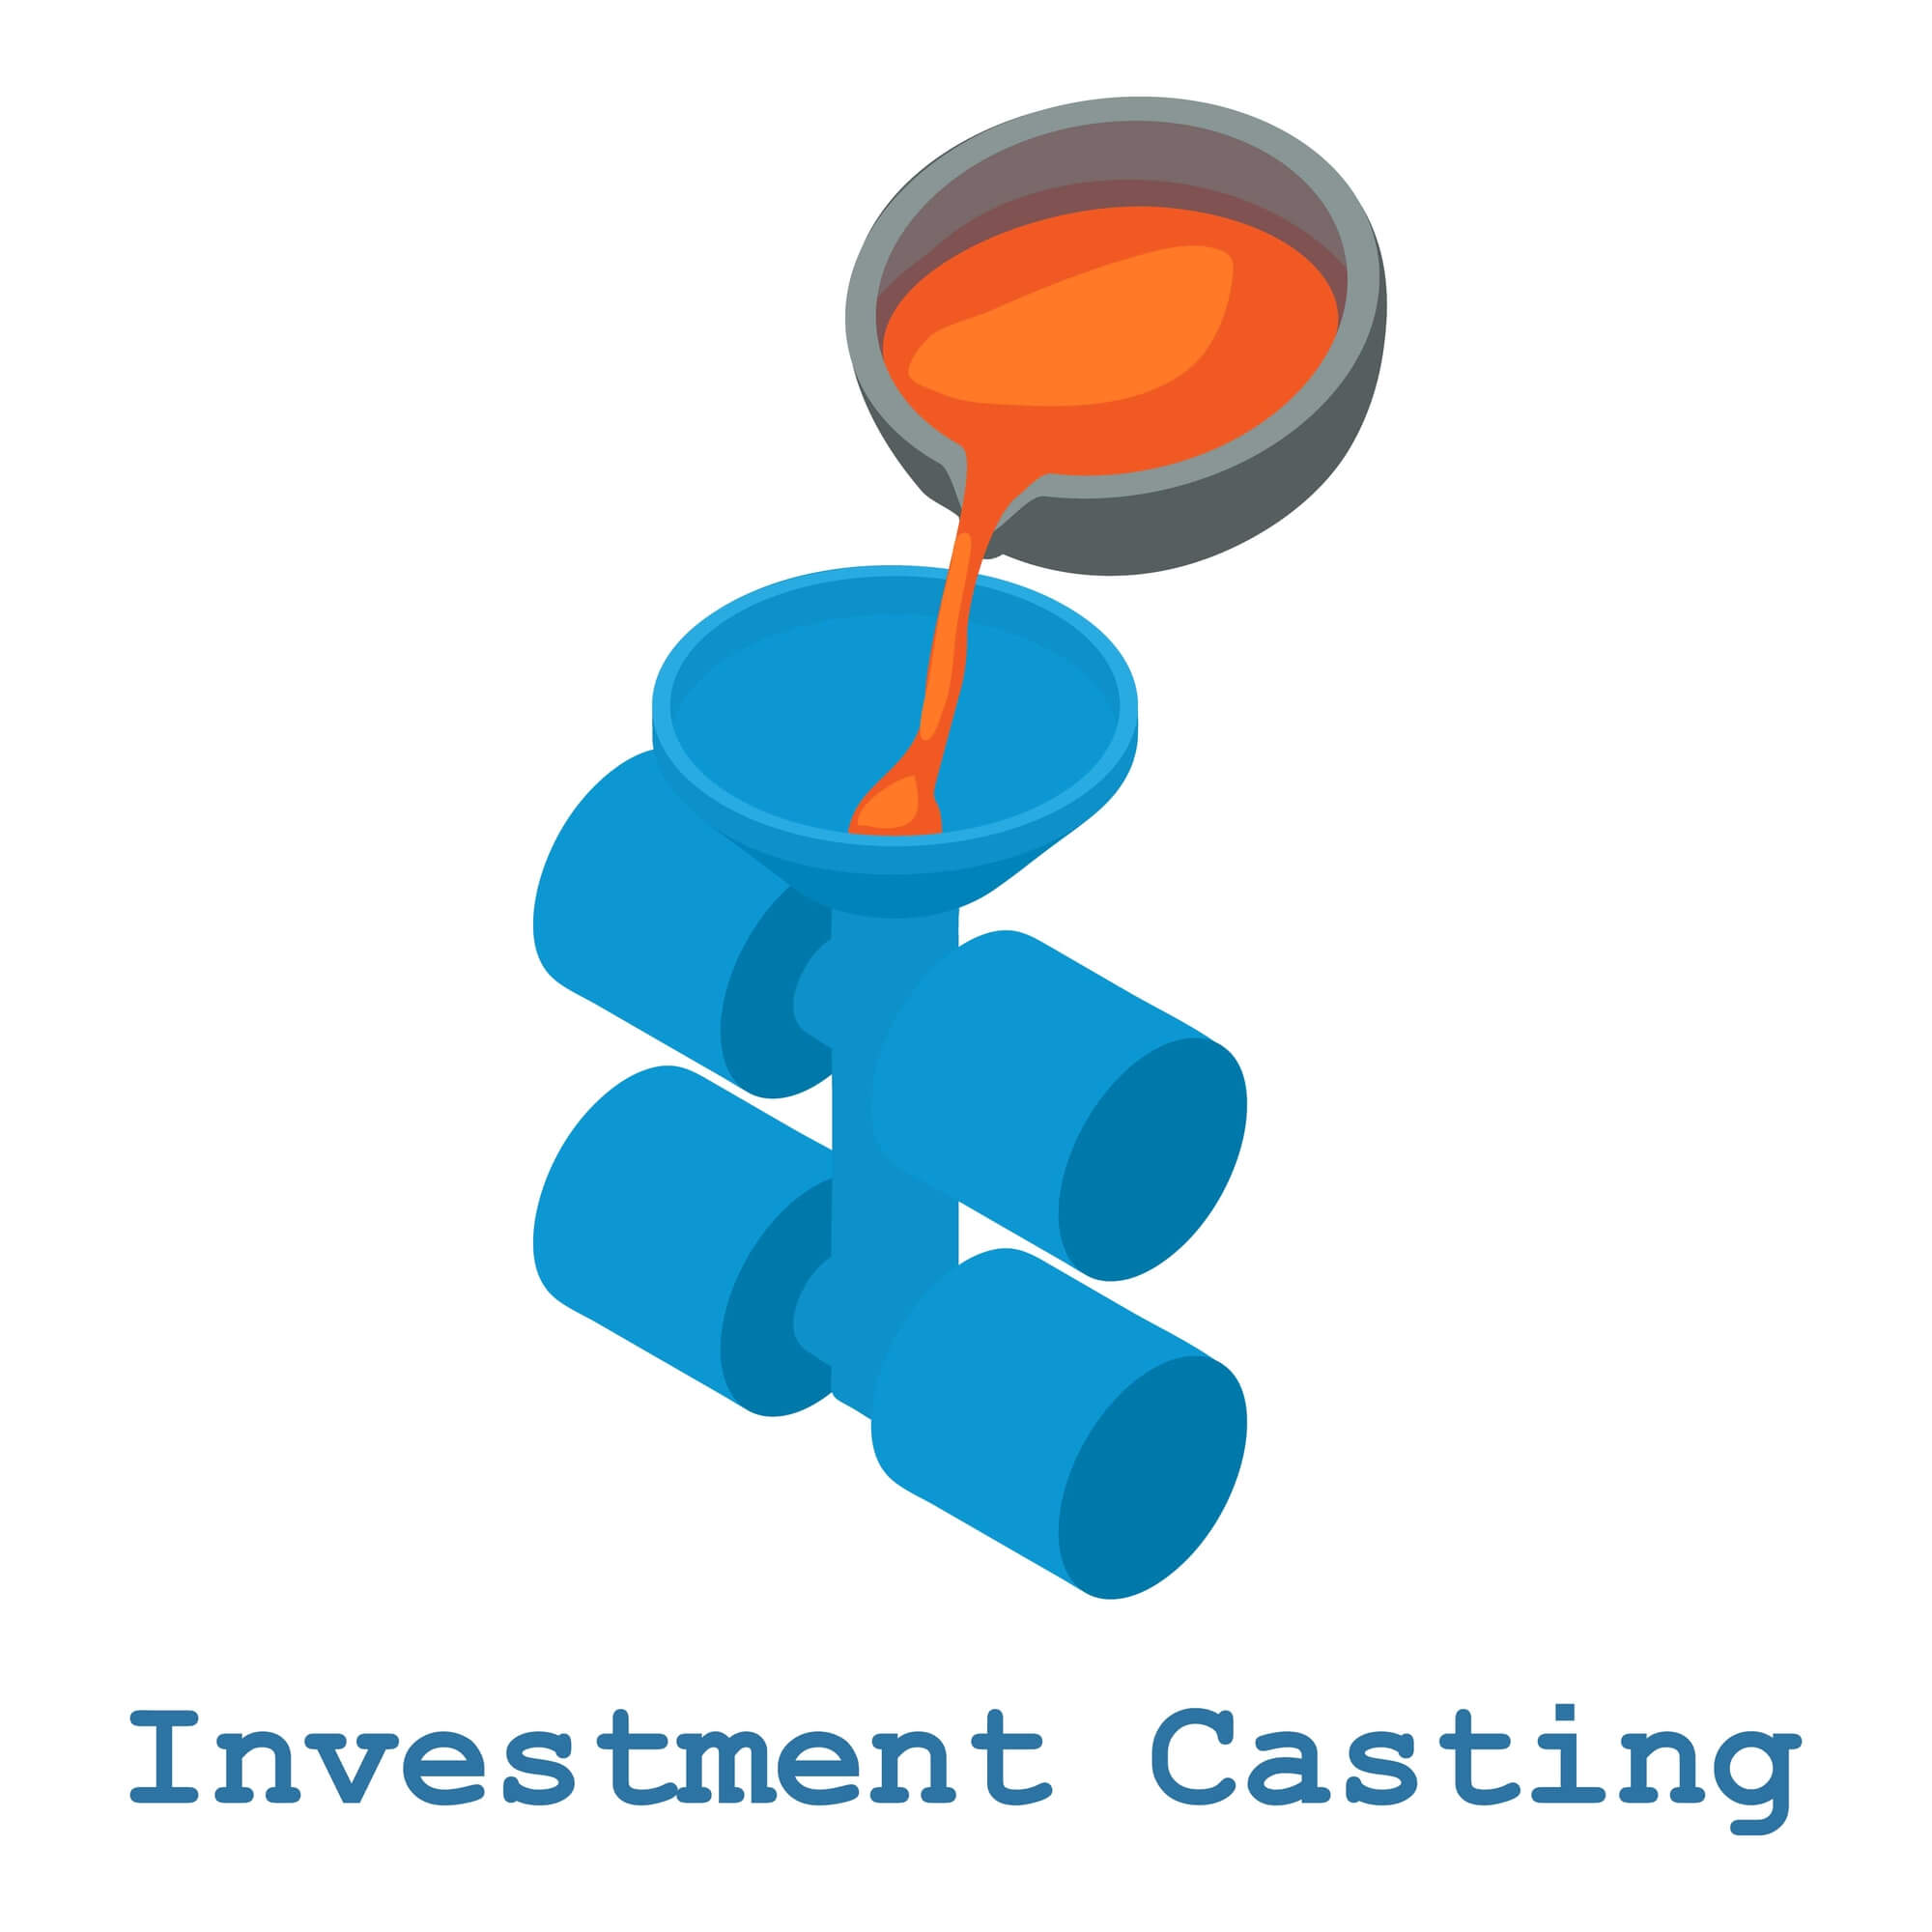 who sells the best investment castings?